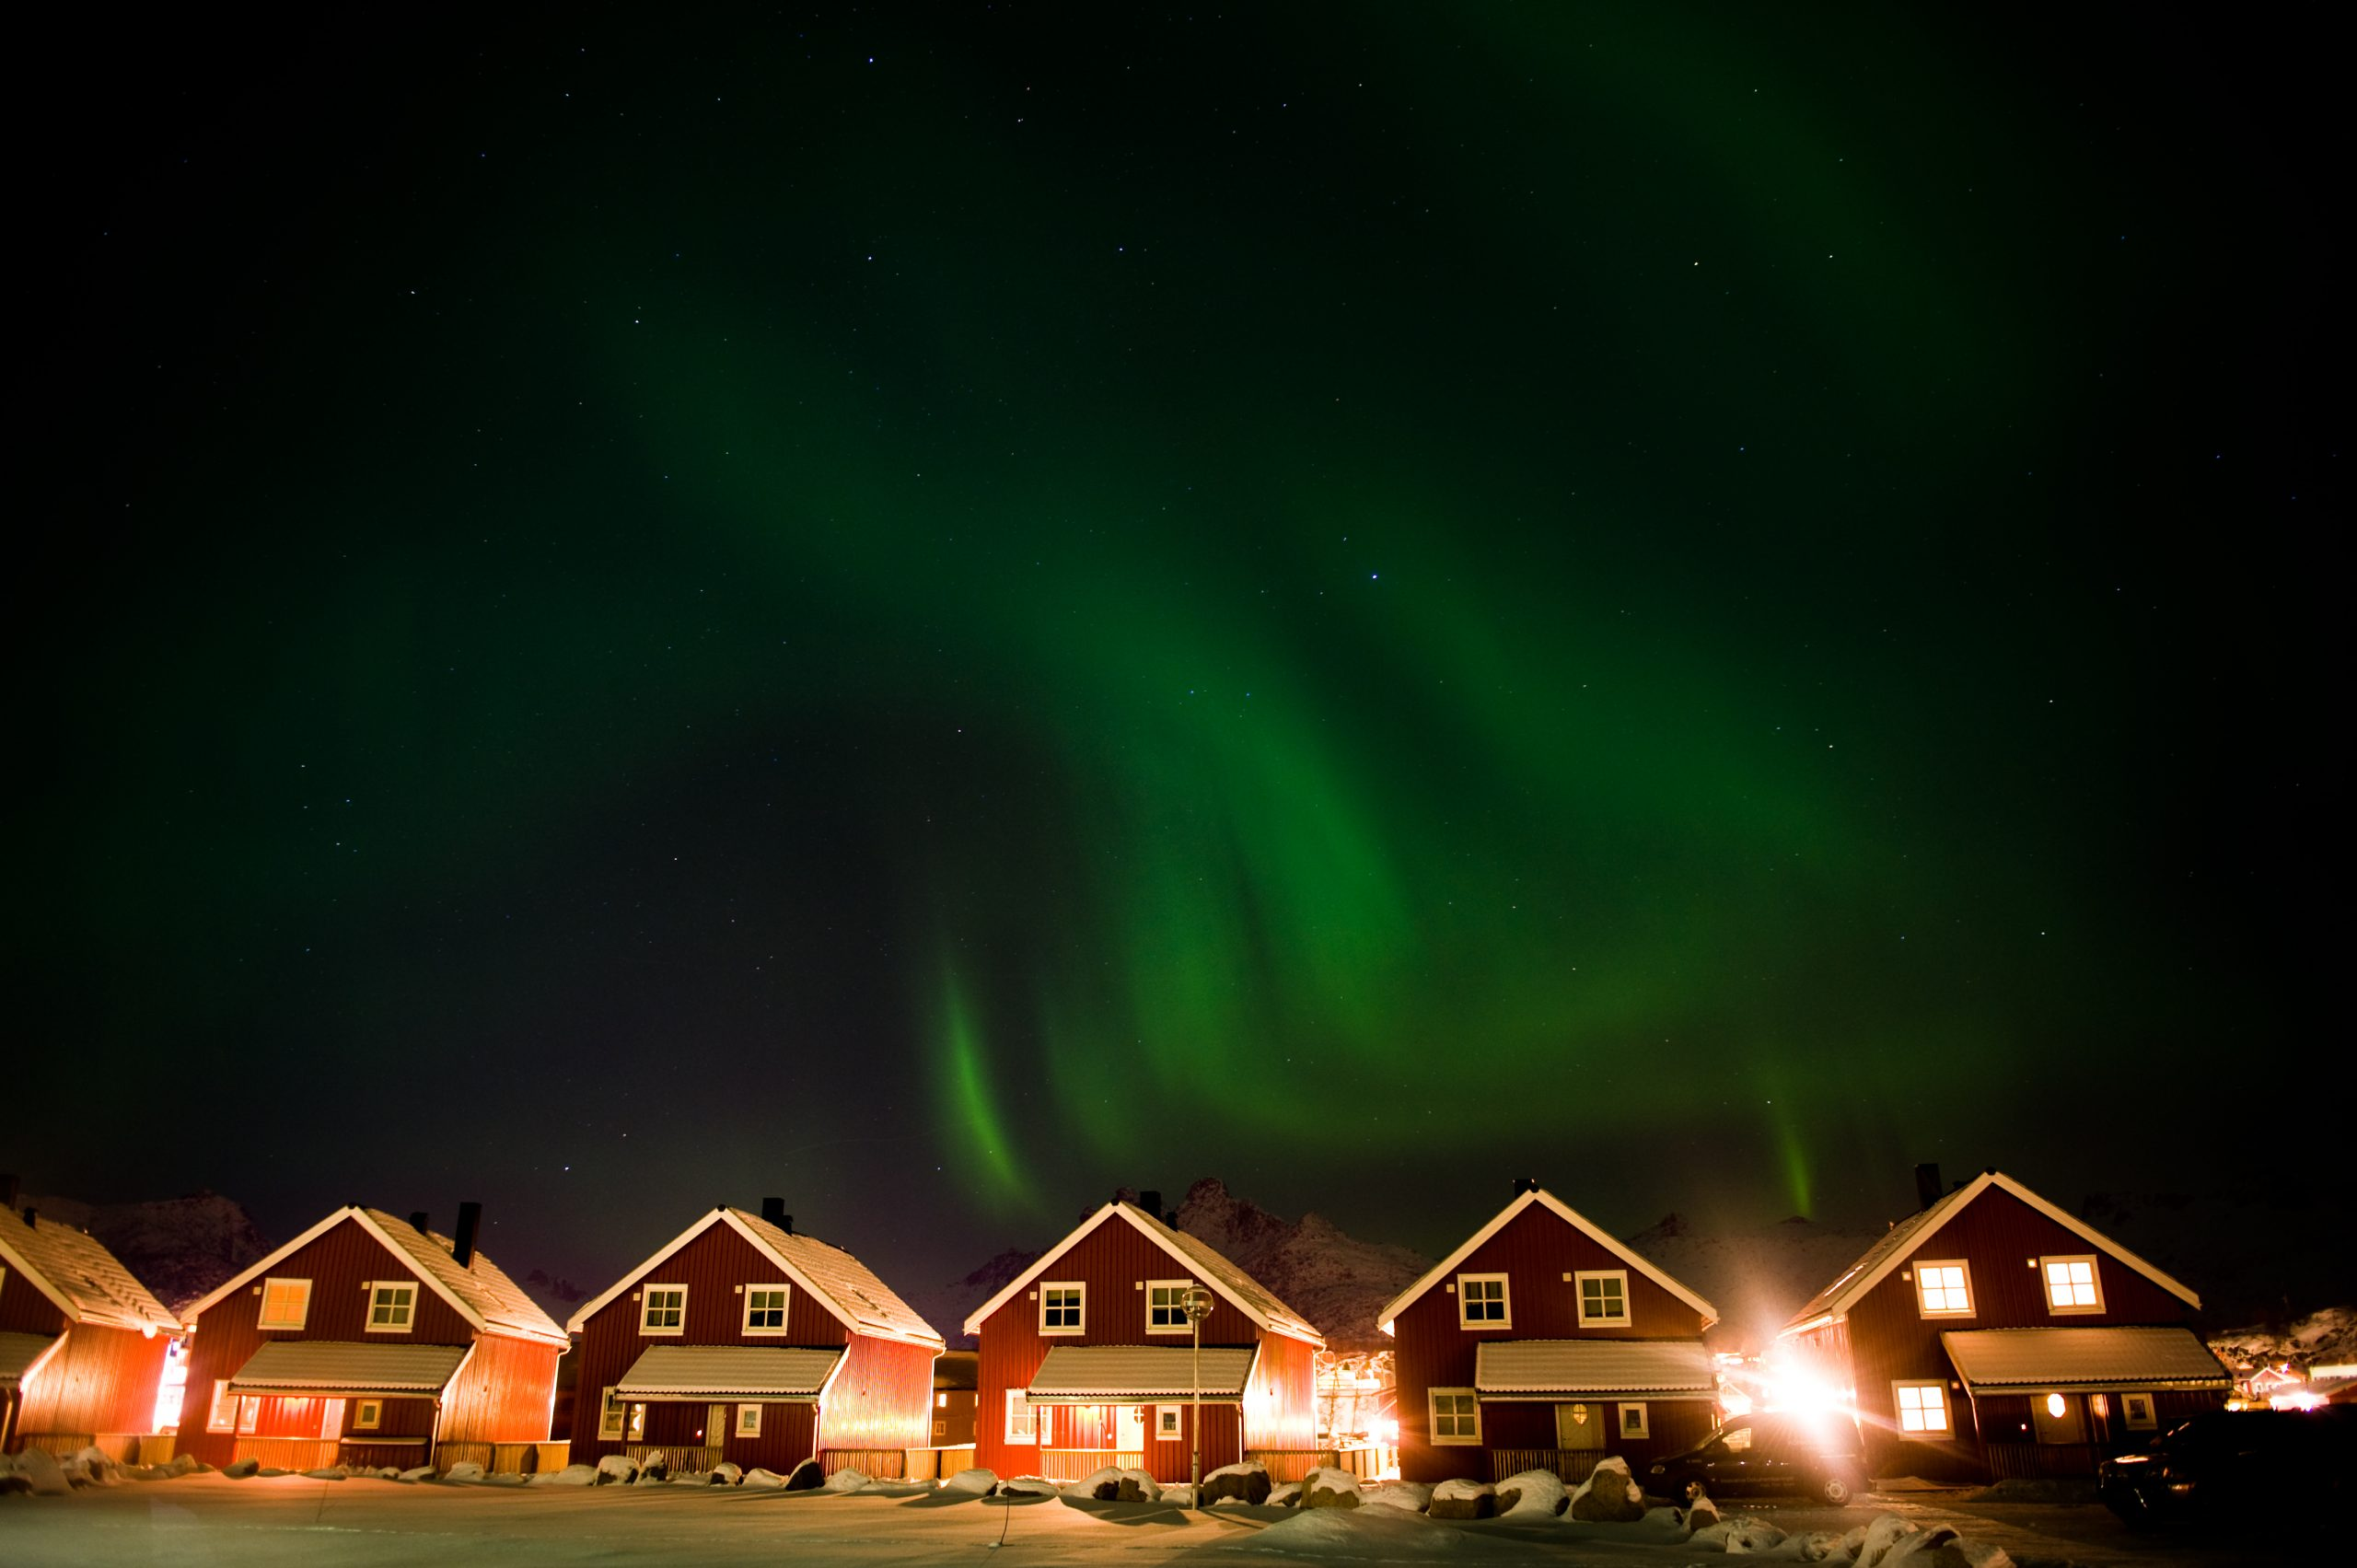 Can You See The Northern Lights in Oslo?